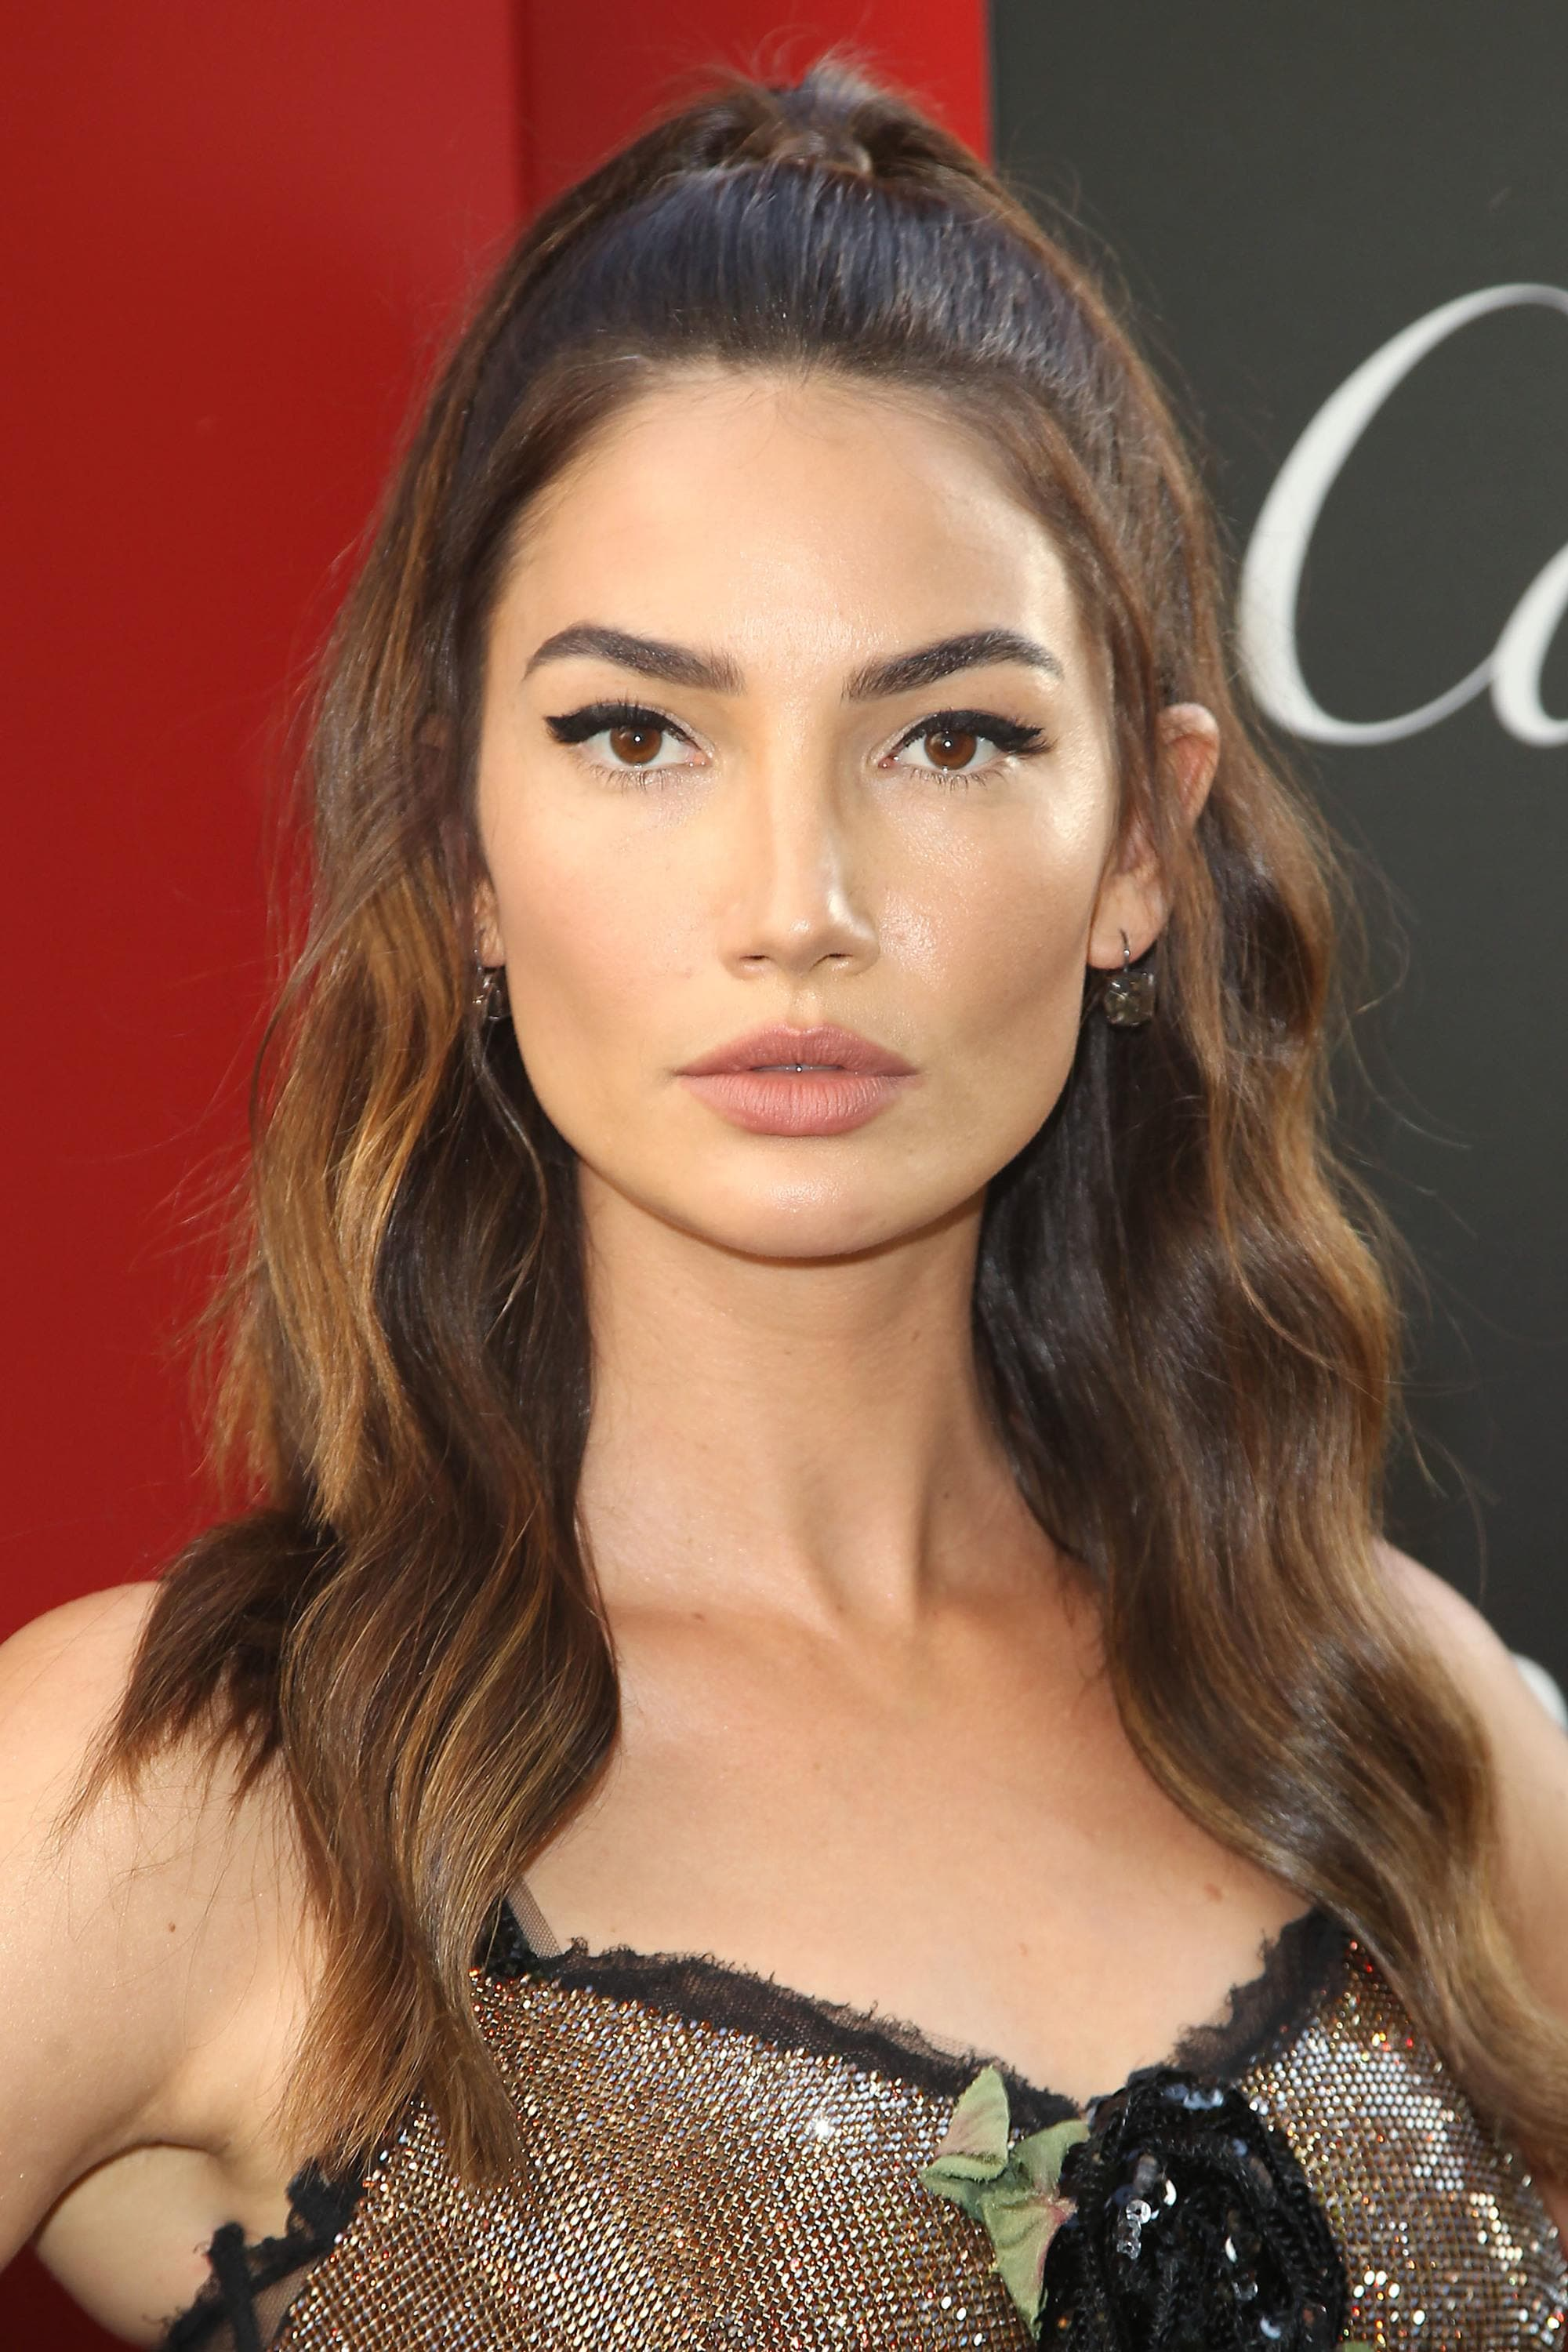 Brown hair with blonde highlights: Lily Aldridge with chocolate brown hair with blonde balayage, styled in a half up half down ponytail with waves